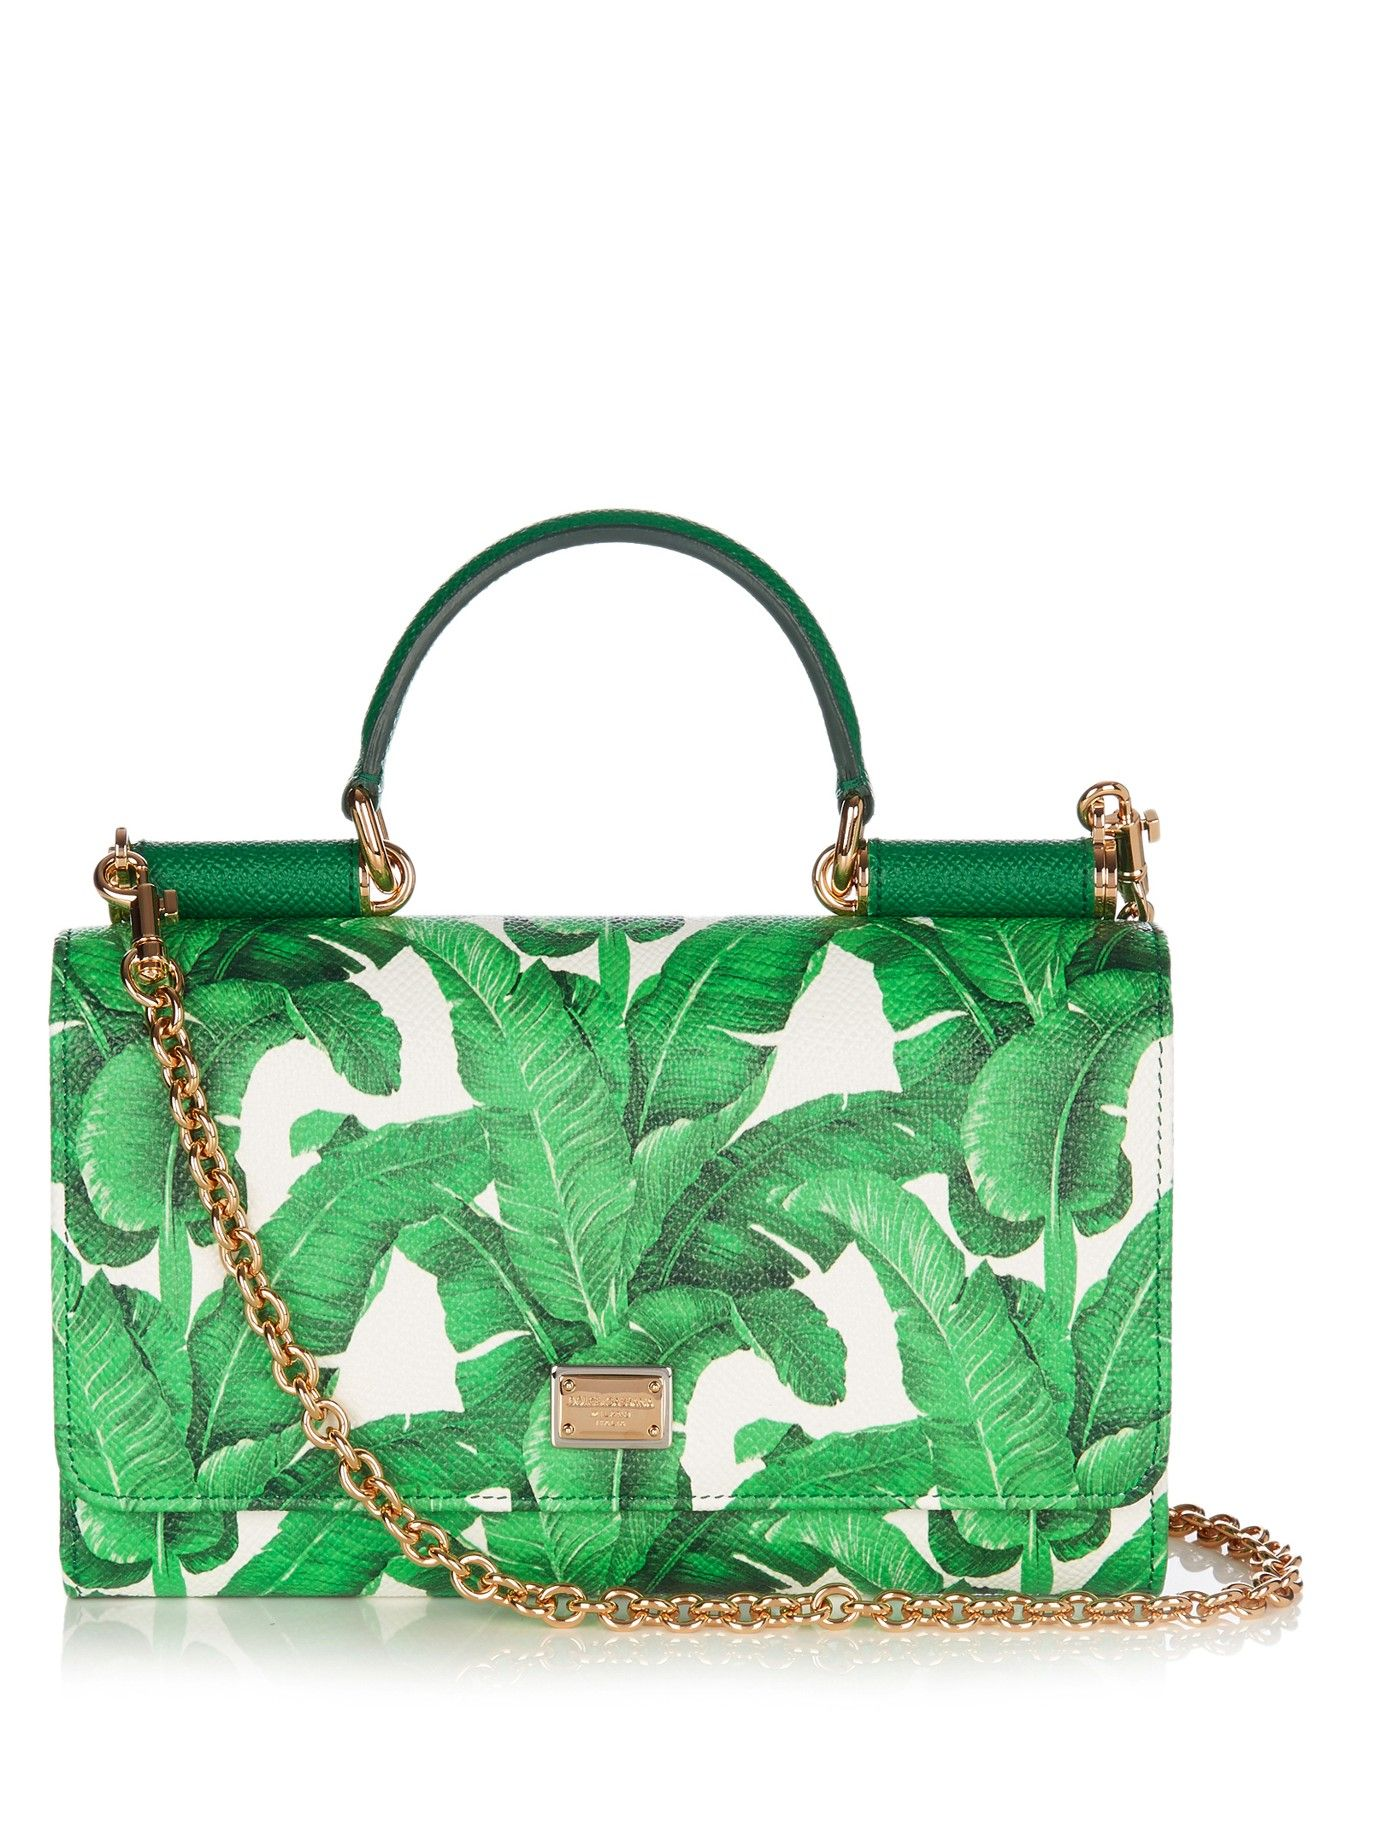 Gabbana Print Body BagDolceamp; Von Banana Cross Mini Leaf shrCtQd